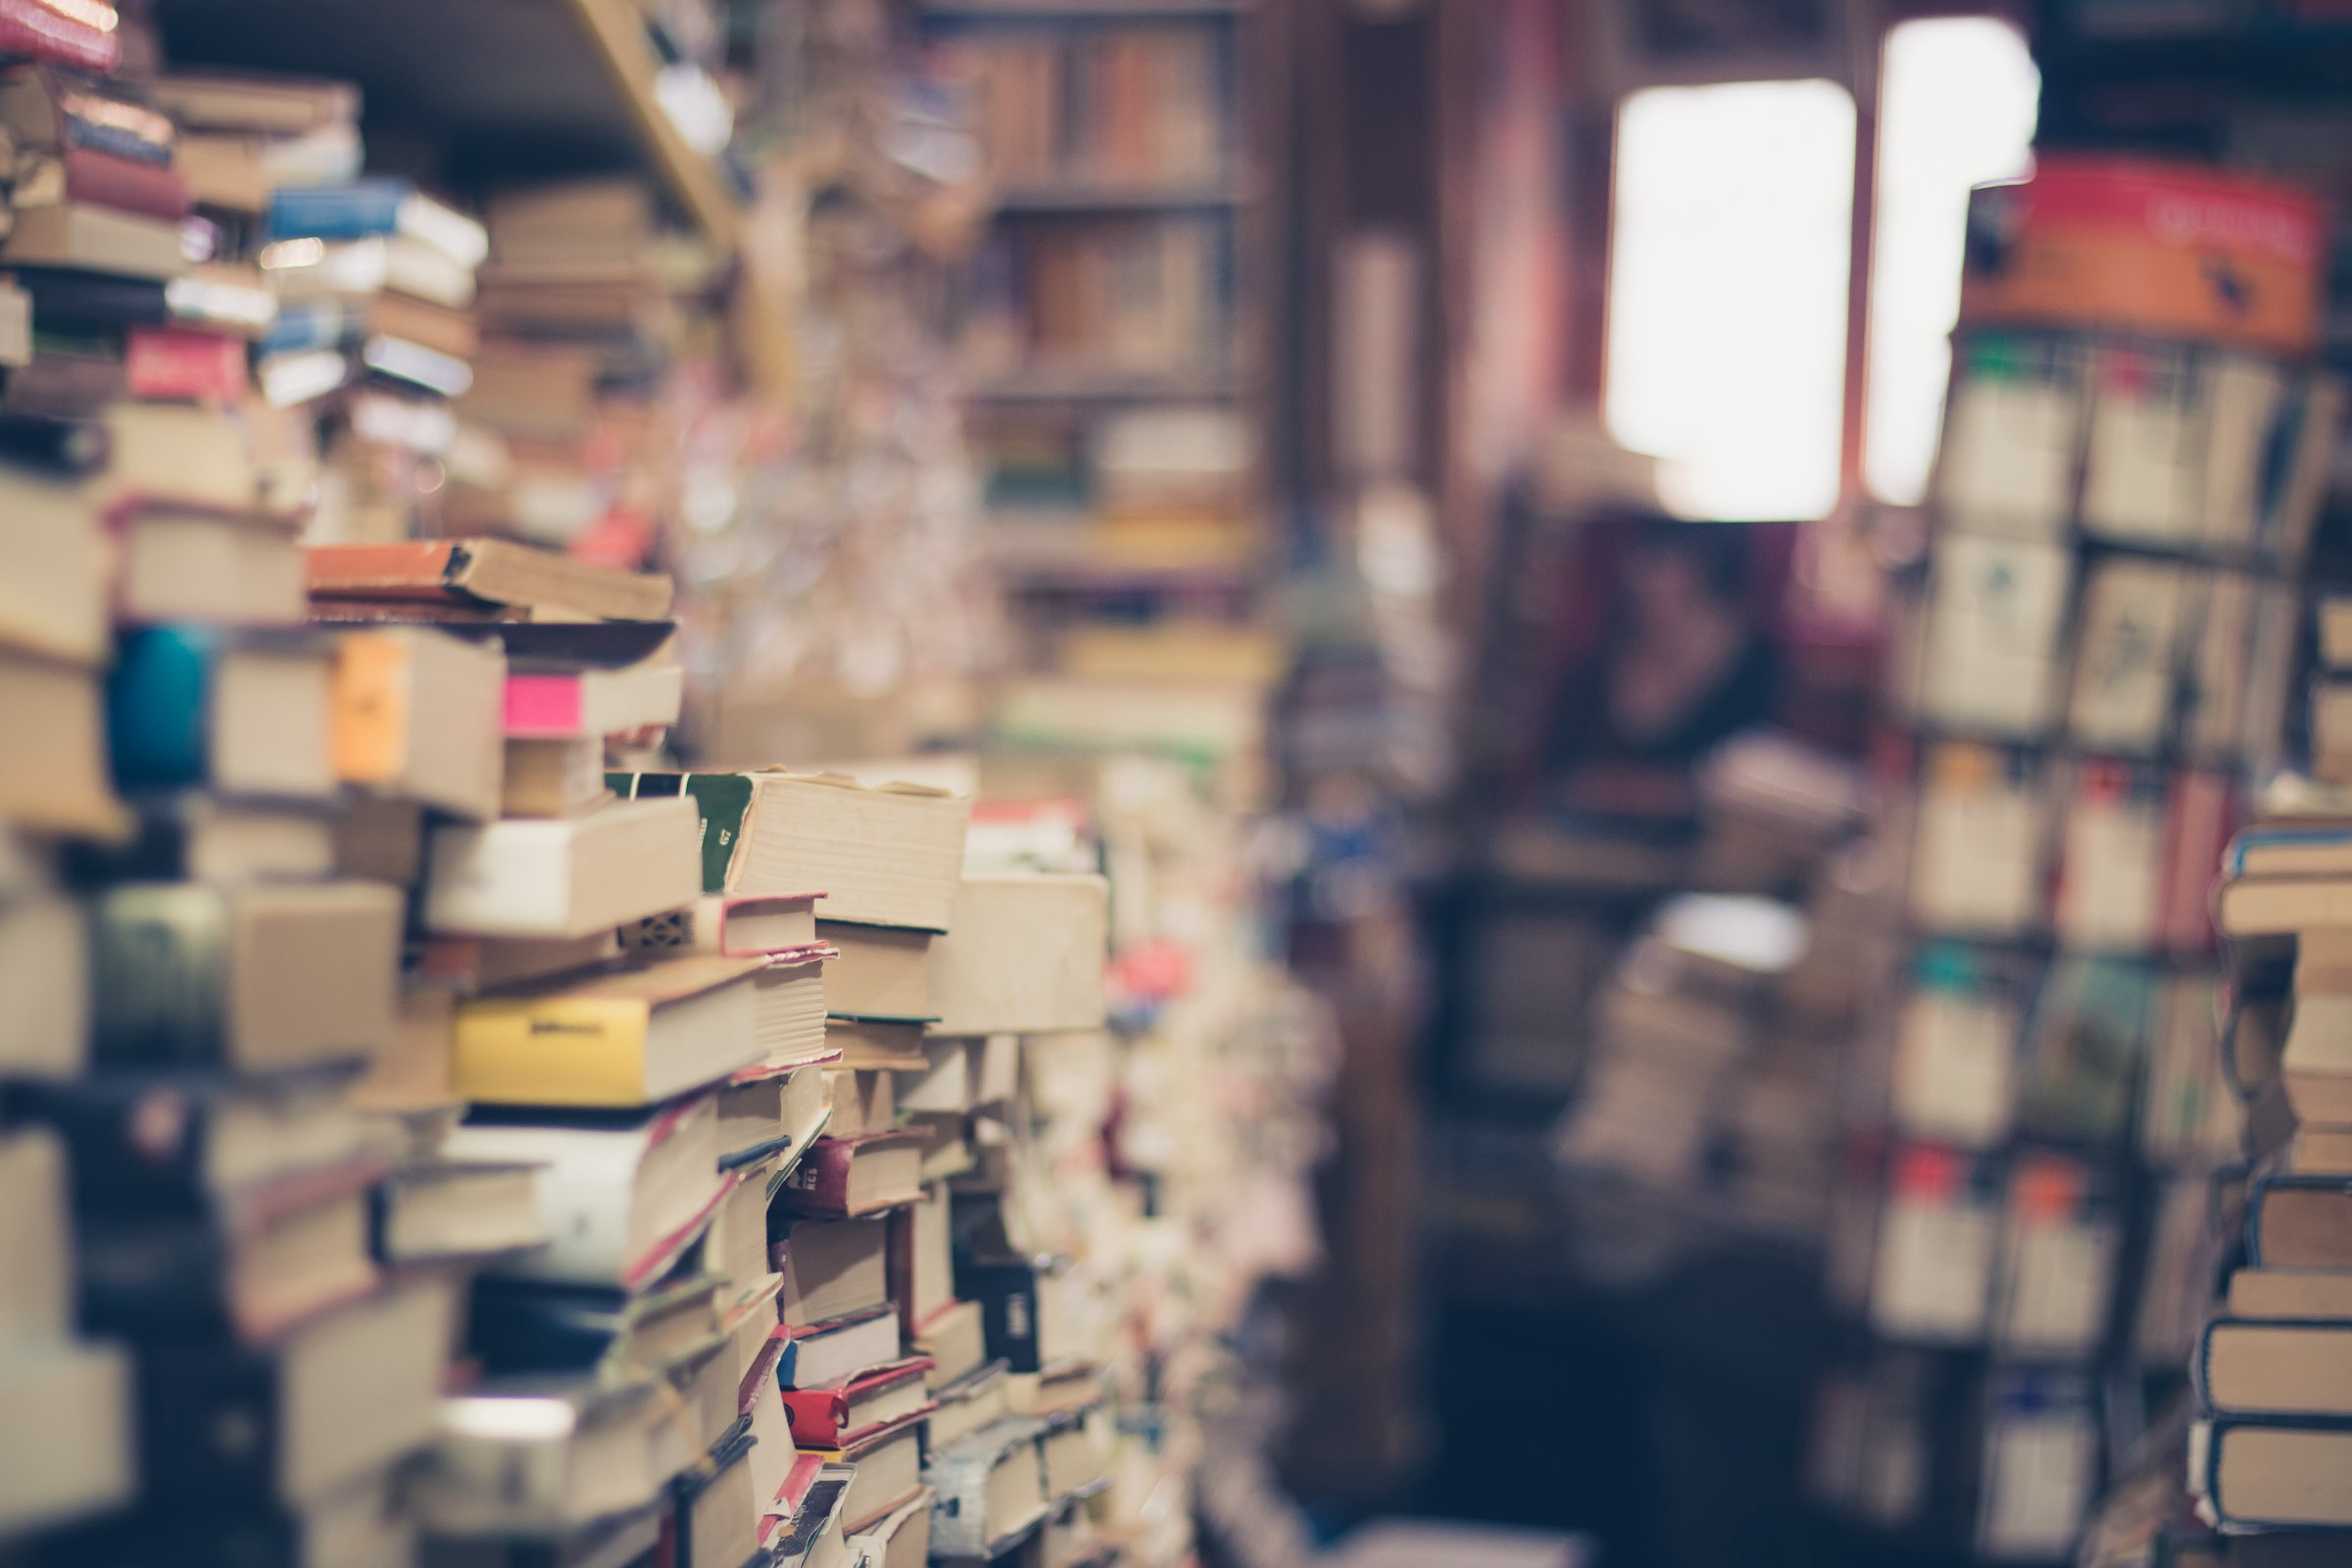 15 Books that Shaped My Mind and Changed My Outlook on Life